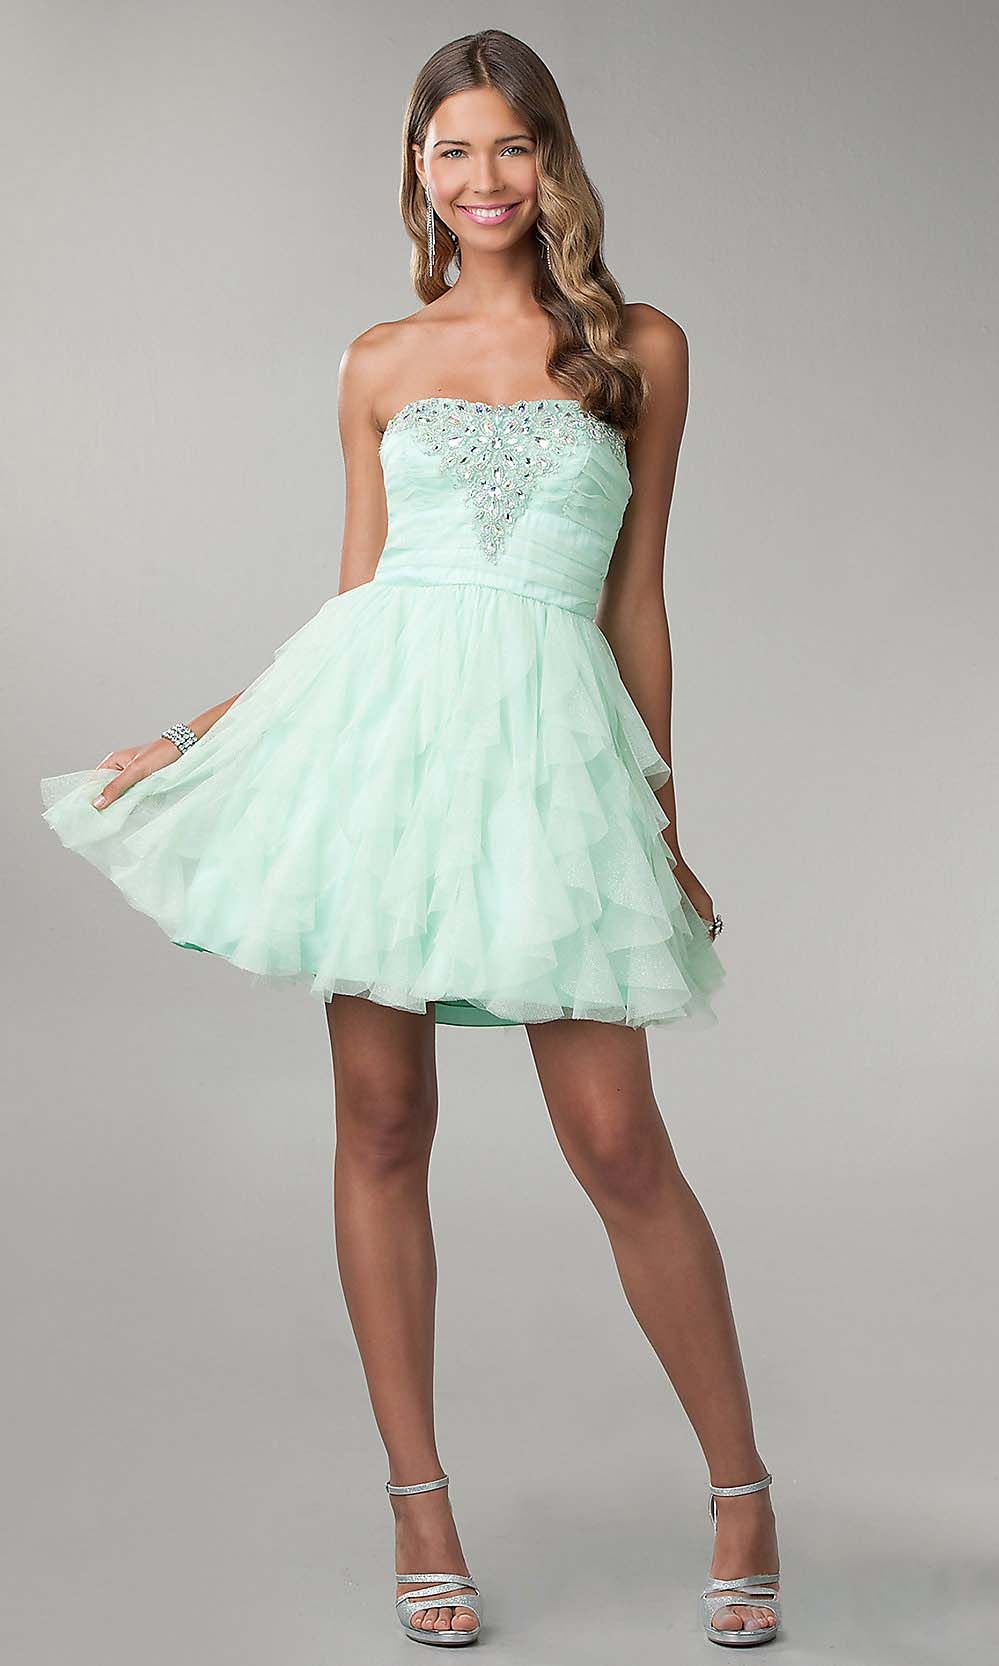 Collection Cute Cheap Prom Dresses For Juniors Pictures - Reikian